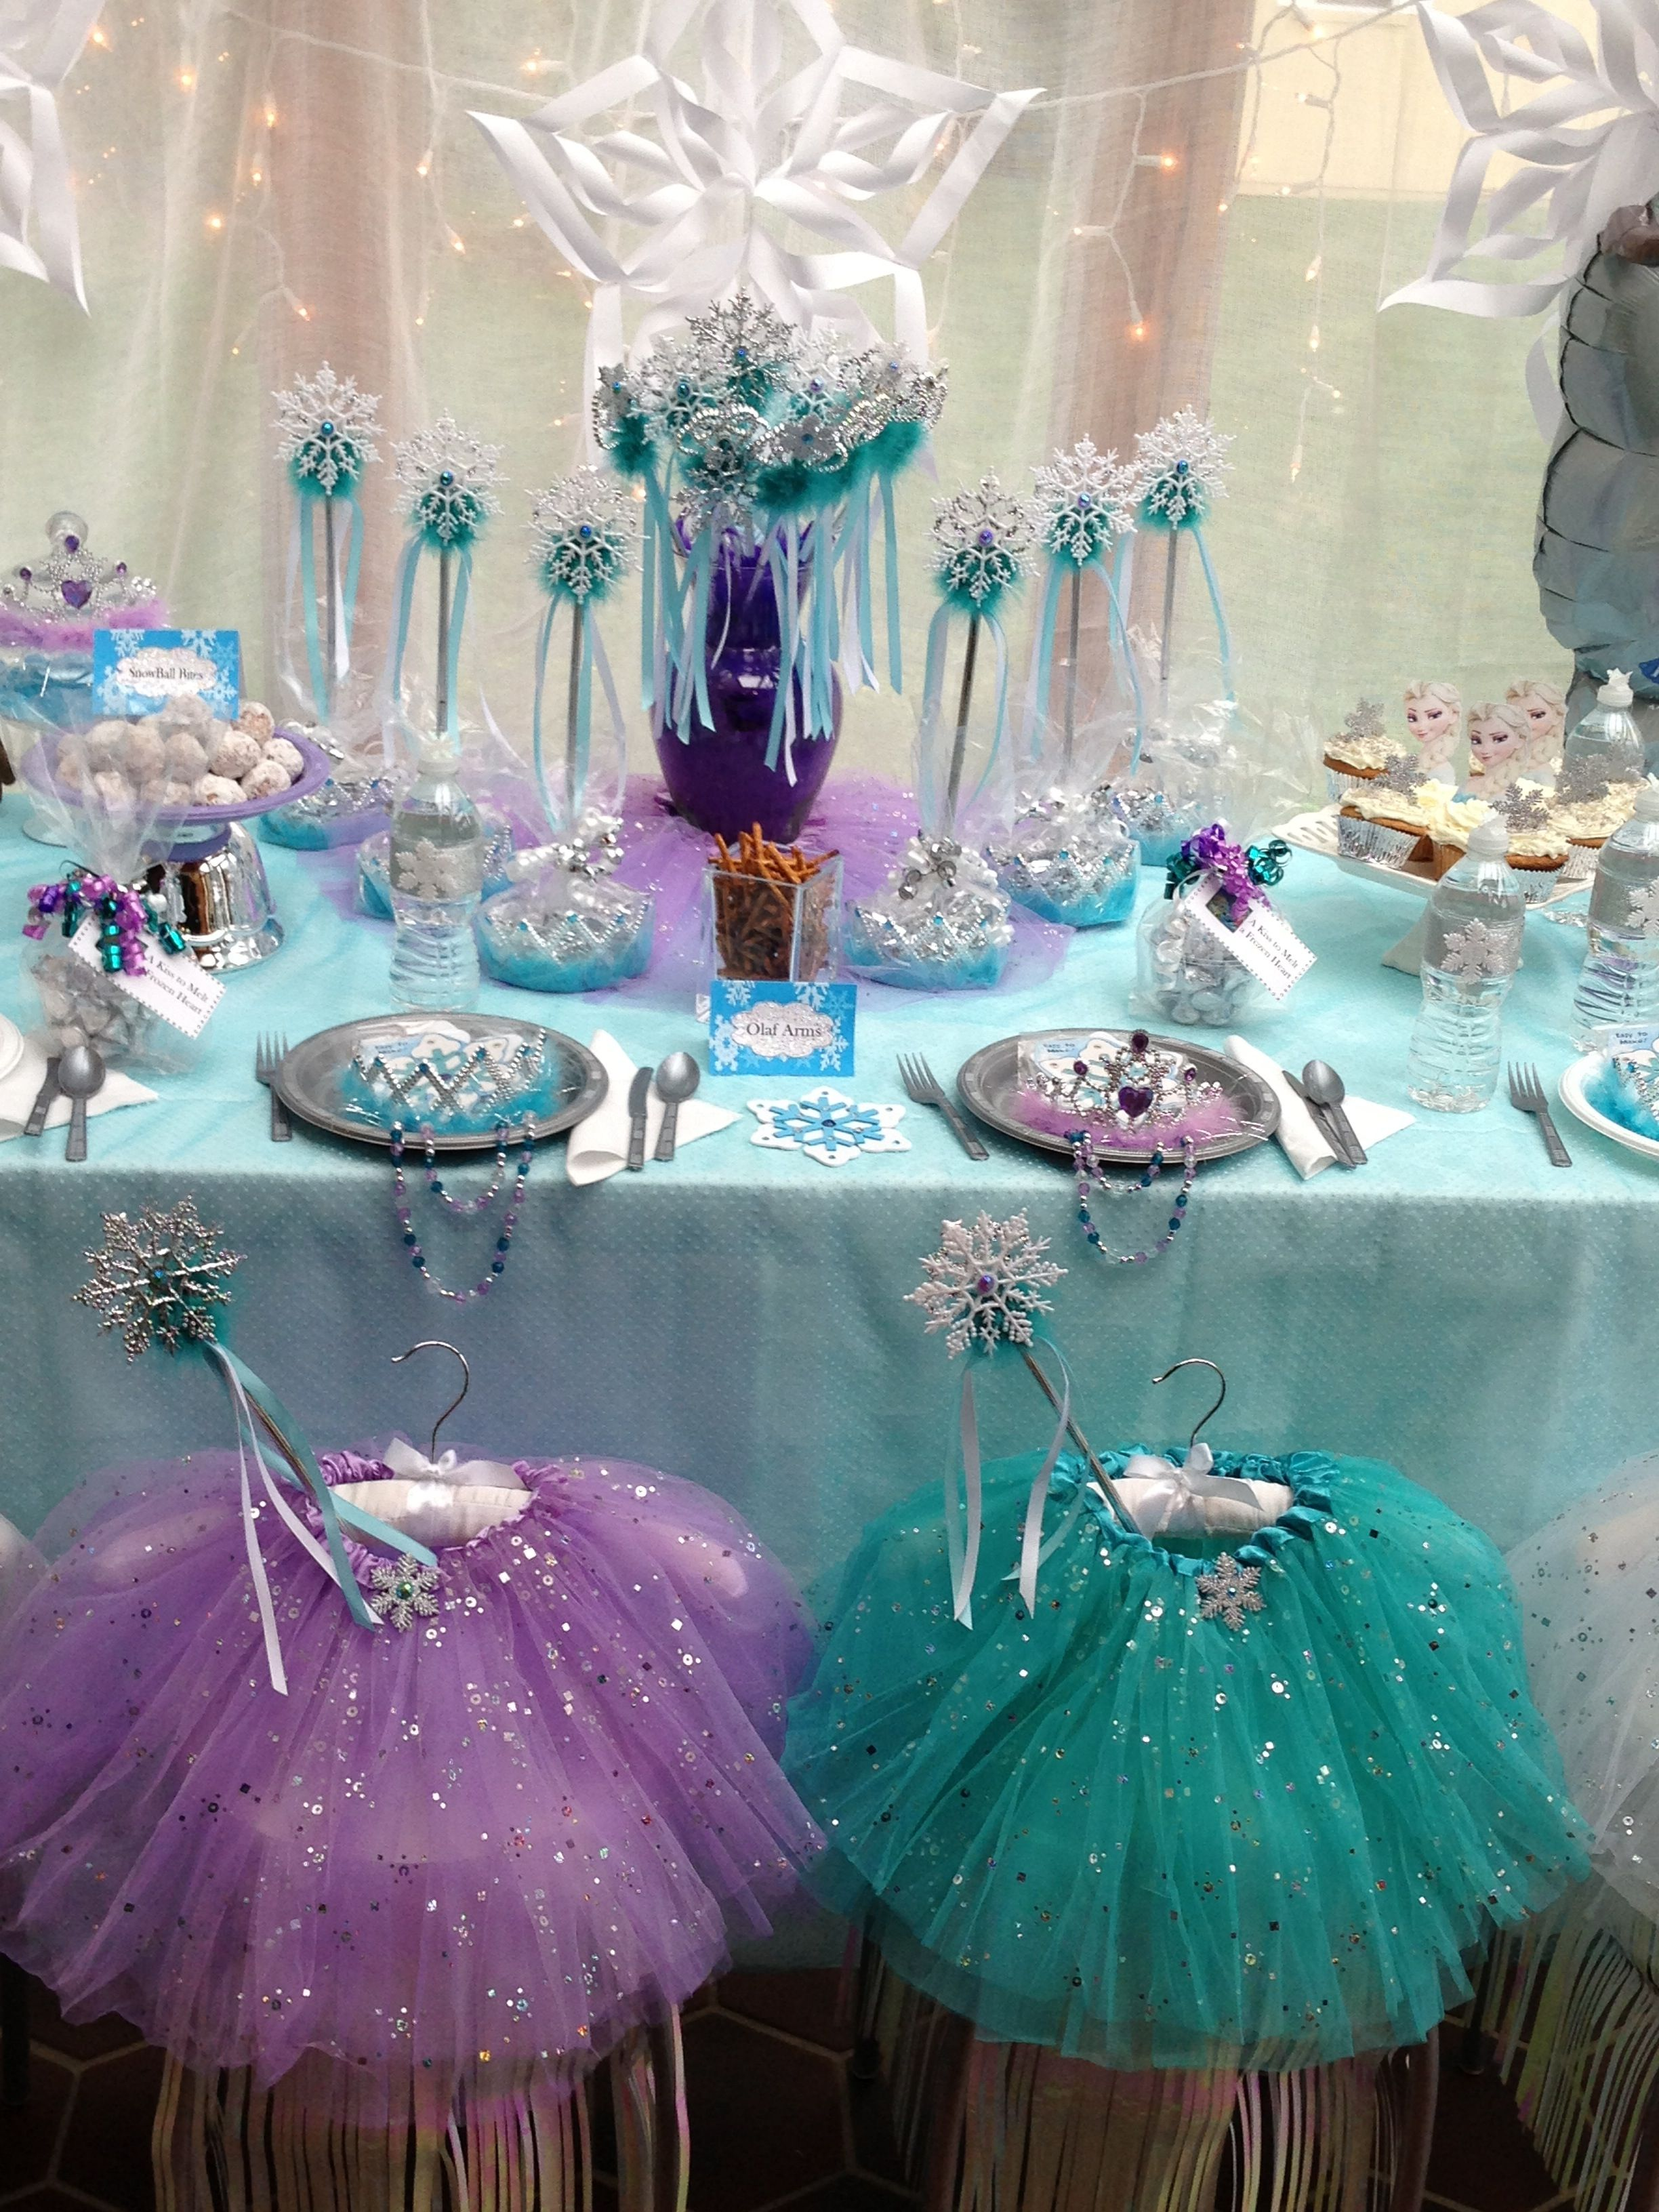 Pin by Kimberly Cimillo on Lily's 3rd birthday Frozen Party Frozen theme party Princess